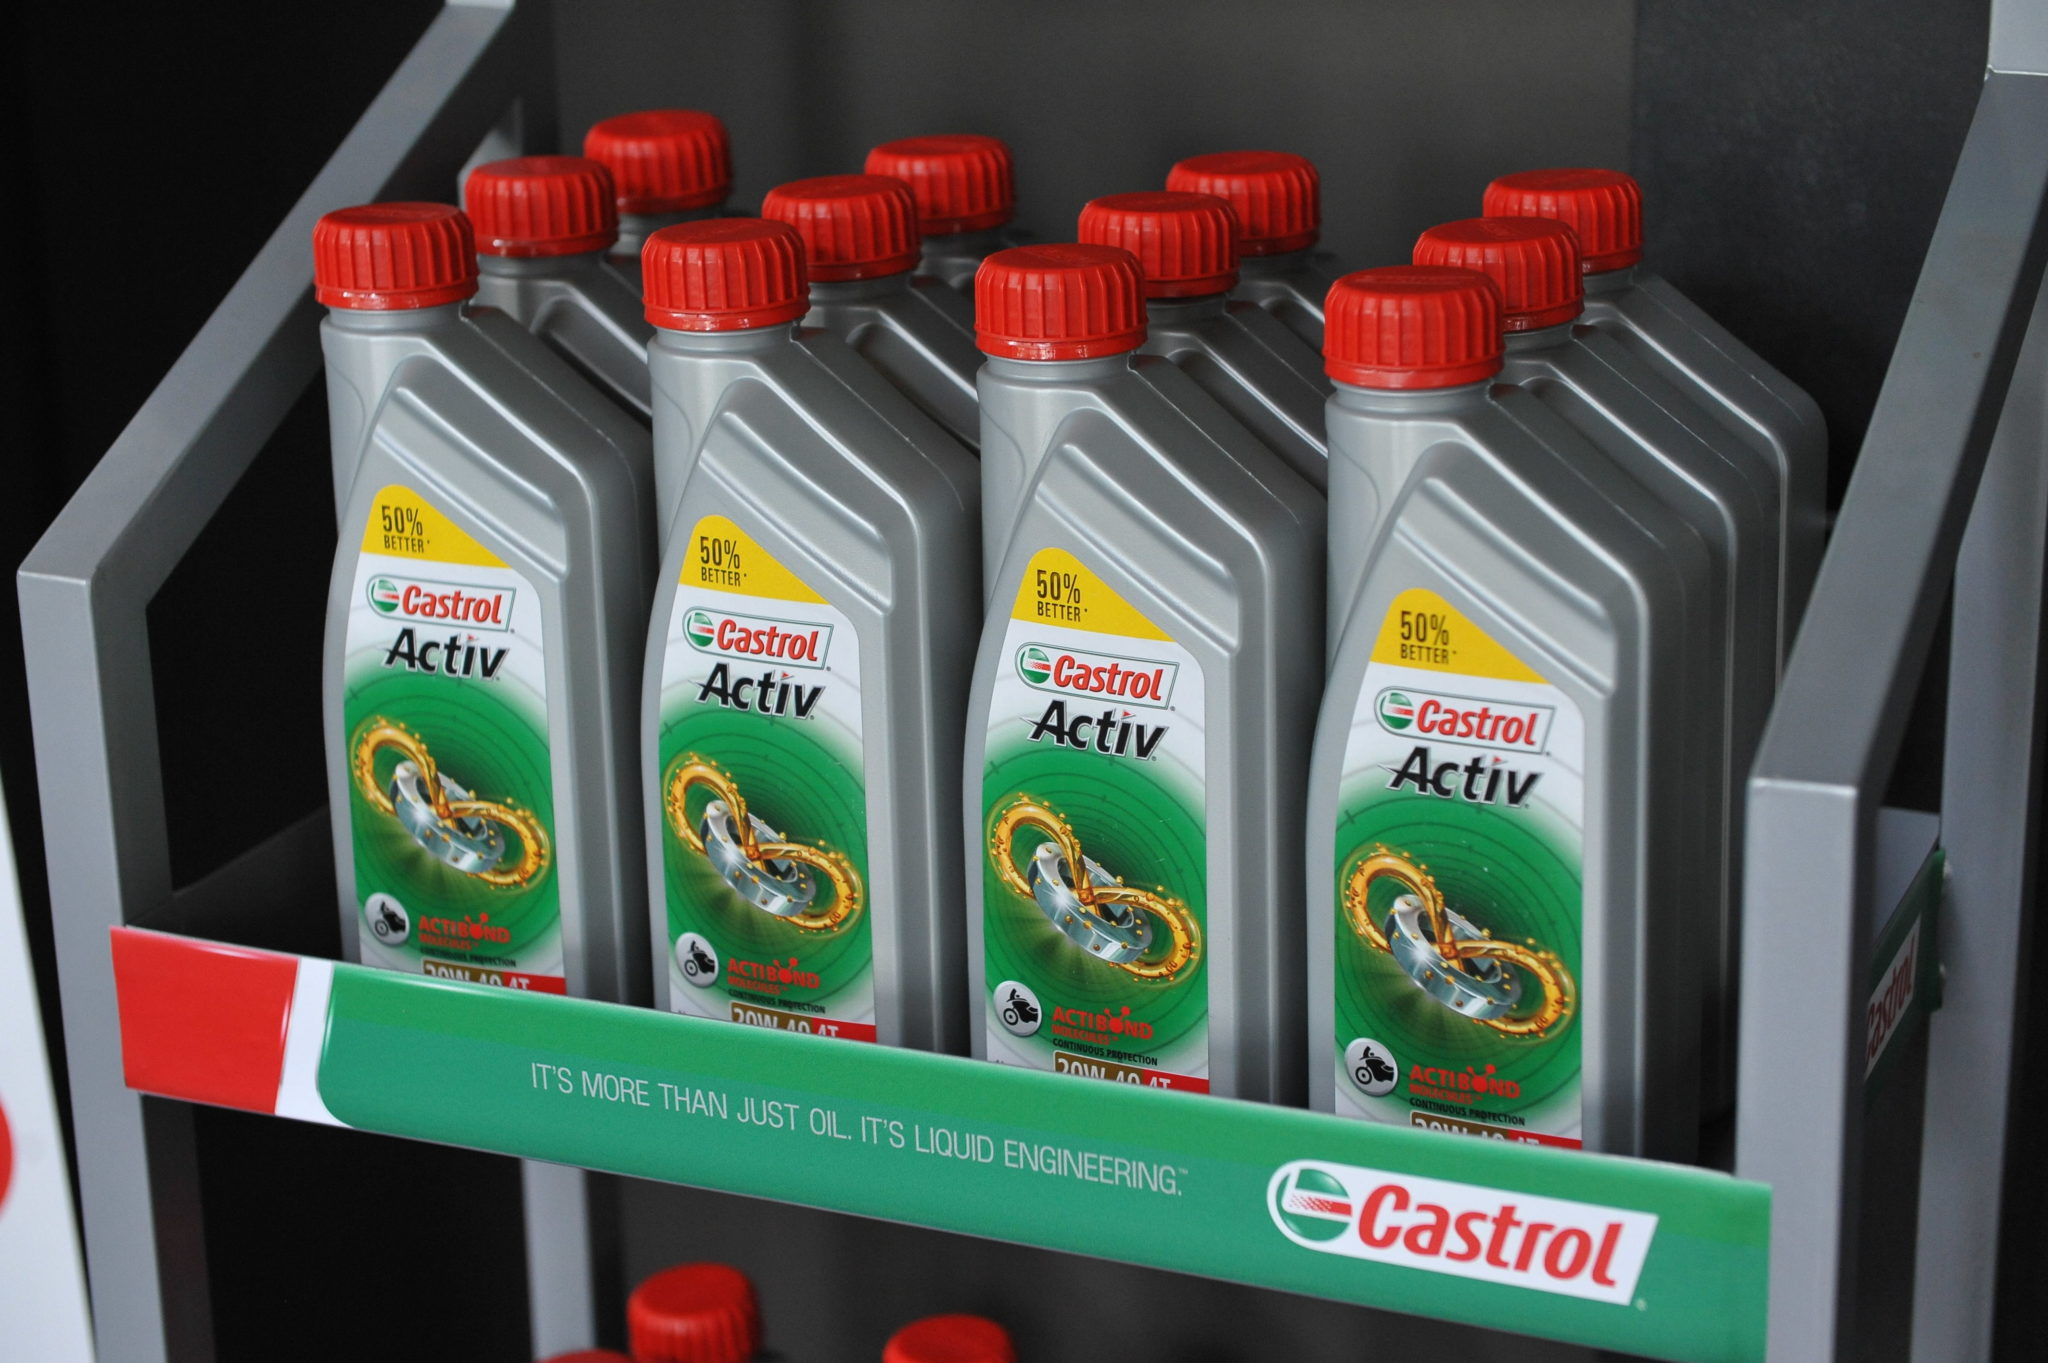 New Castrol Active gives better engine protection